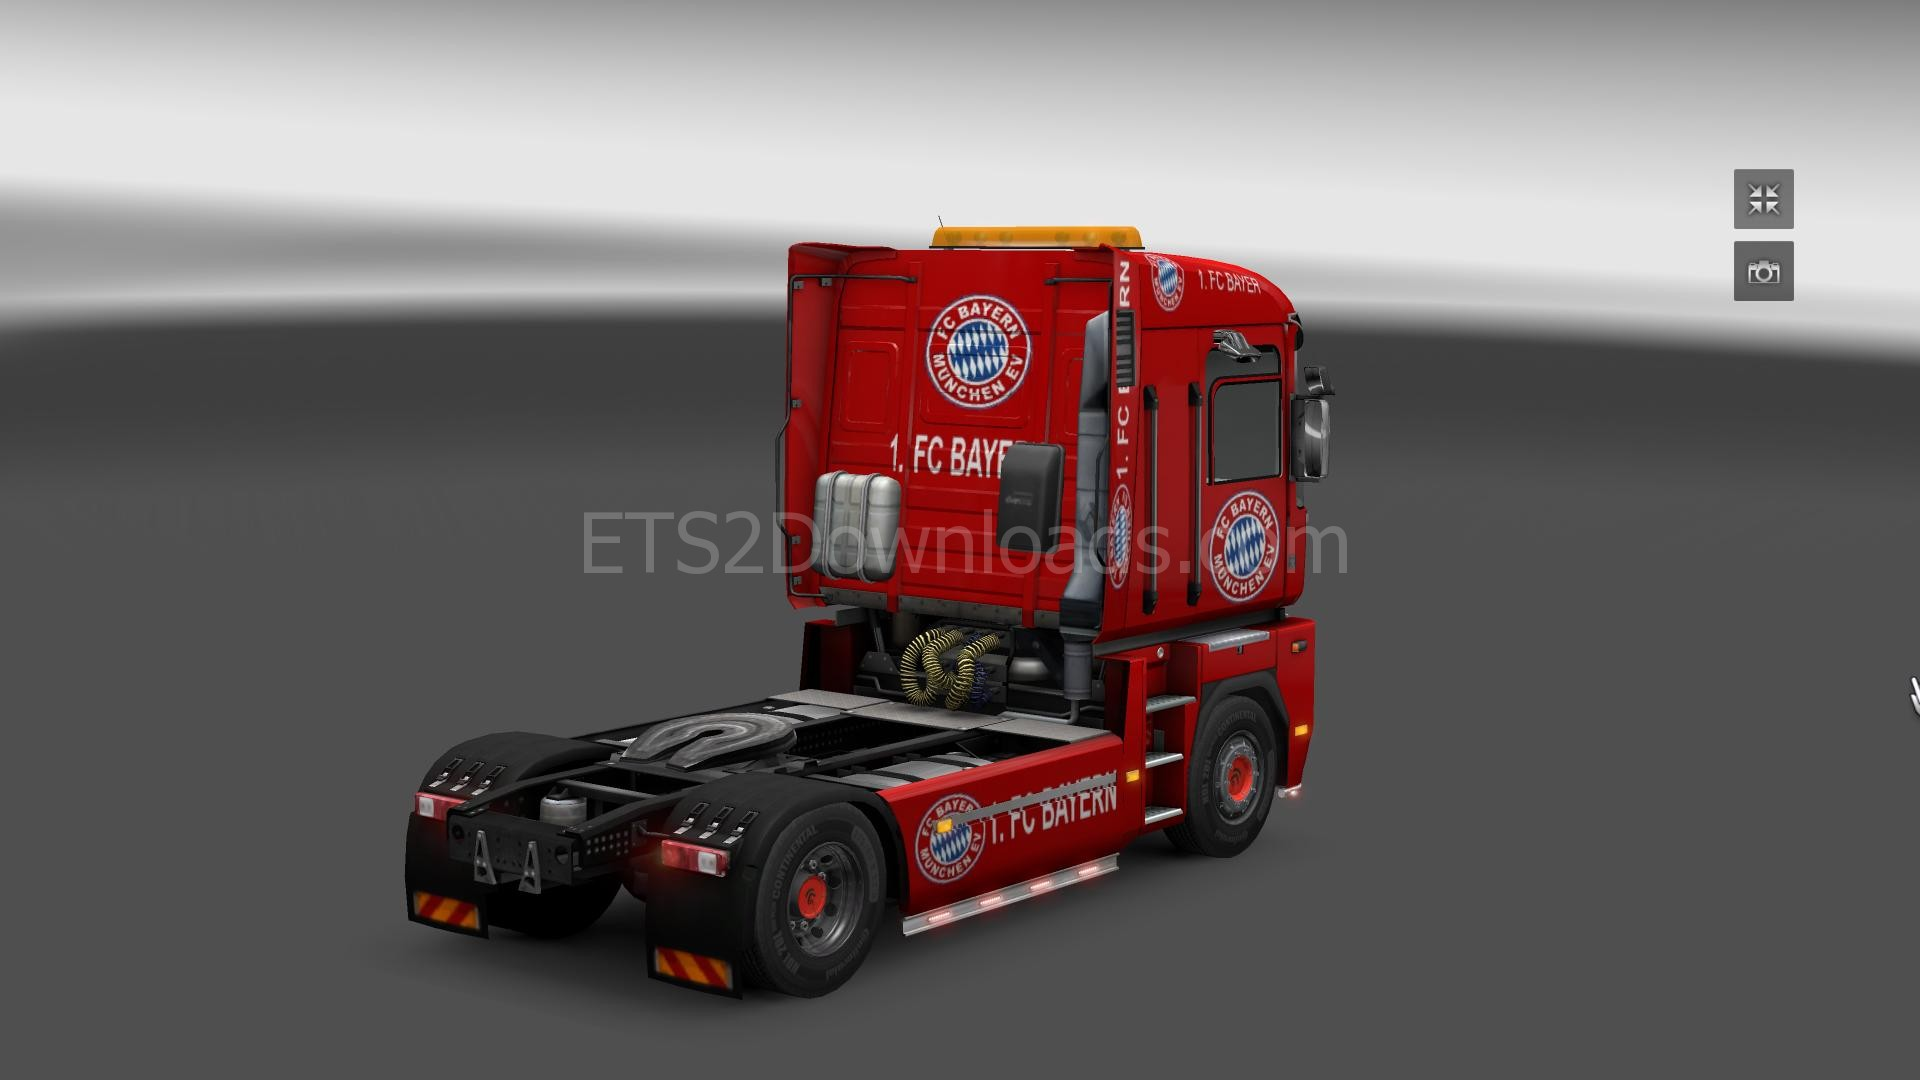 bayern-munich-skin-for-renault-ets2-3